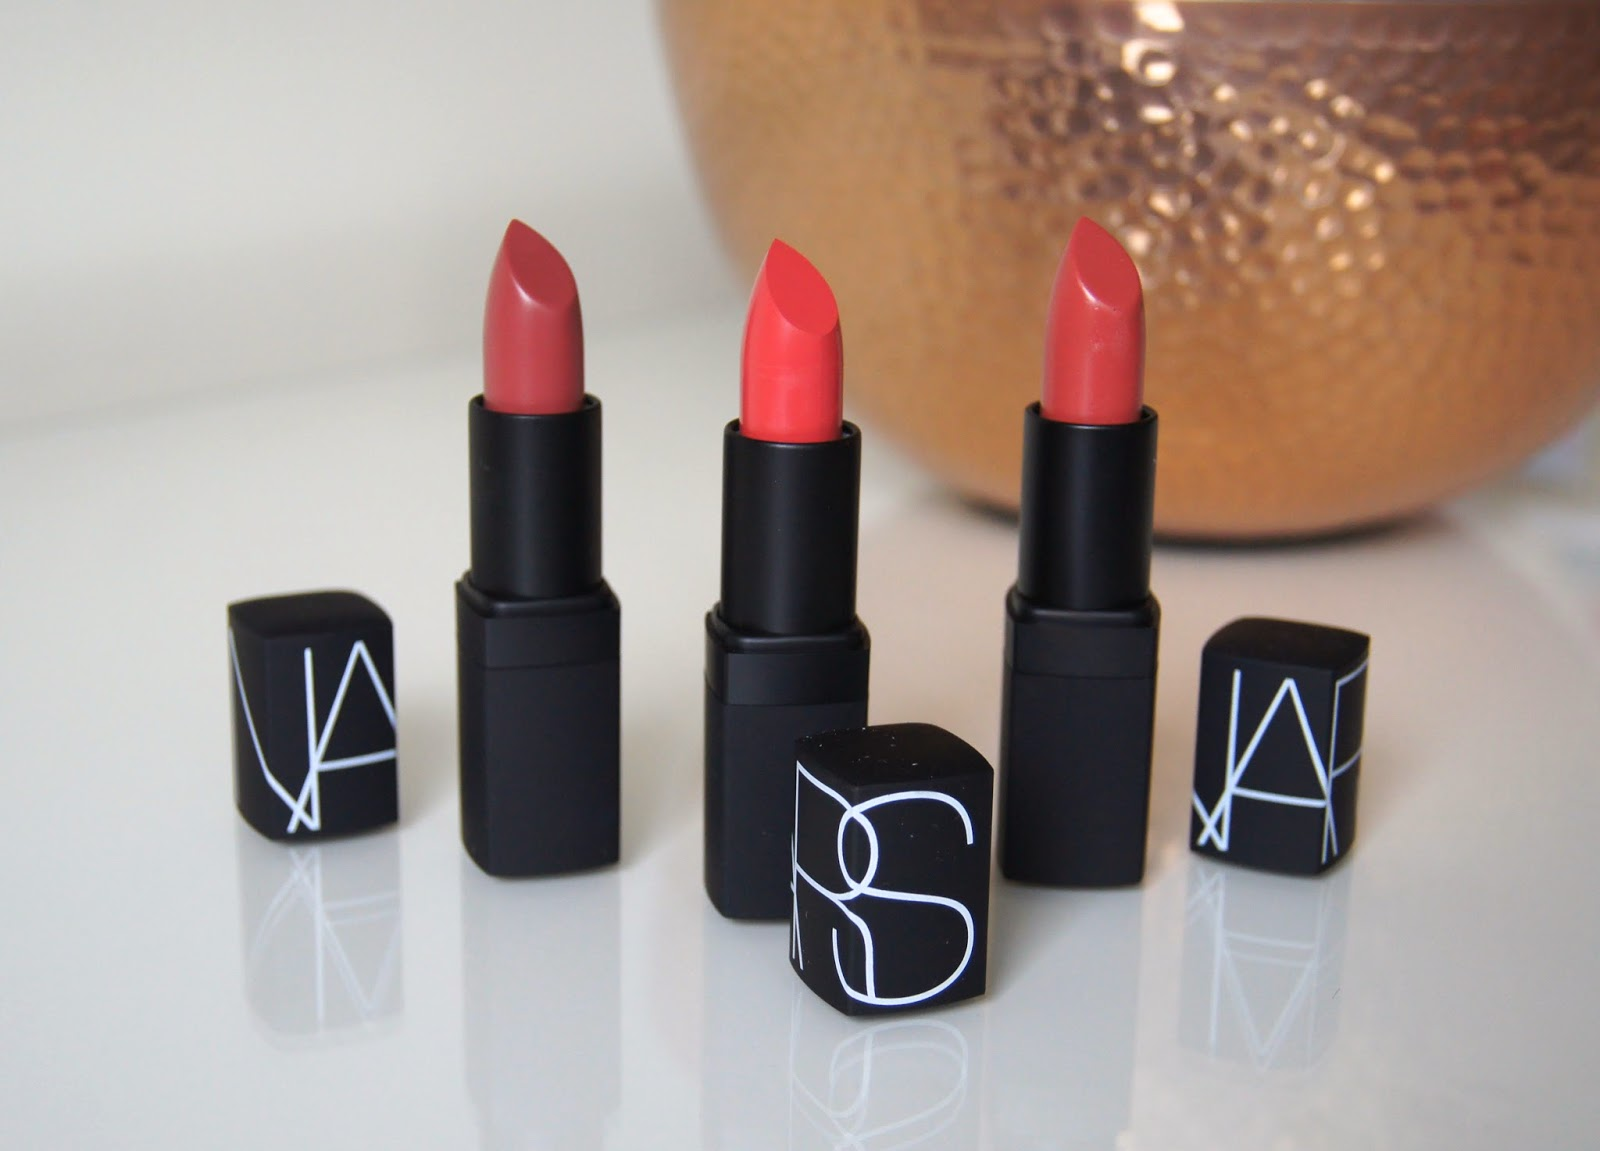 nars lipstick review dolce vita niagara mayflower swatches